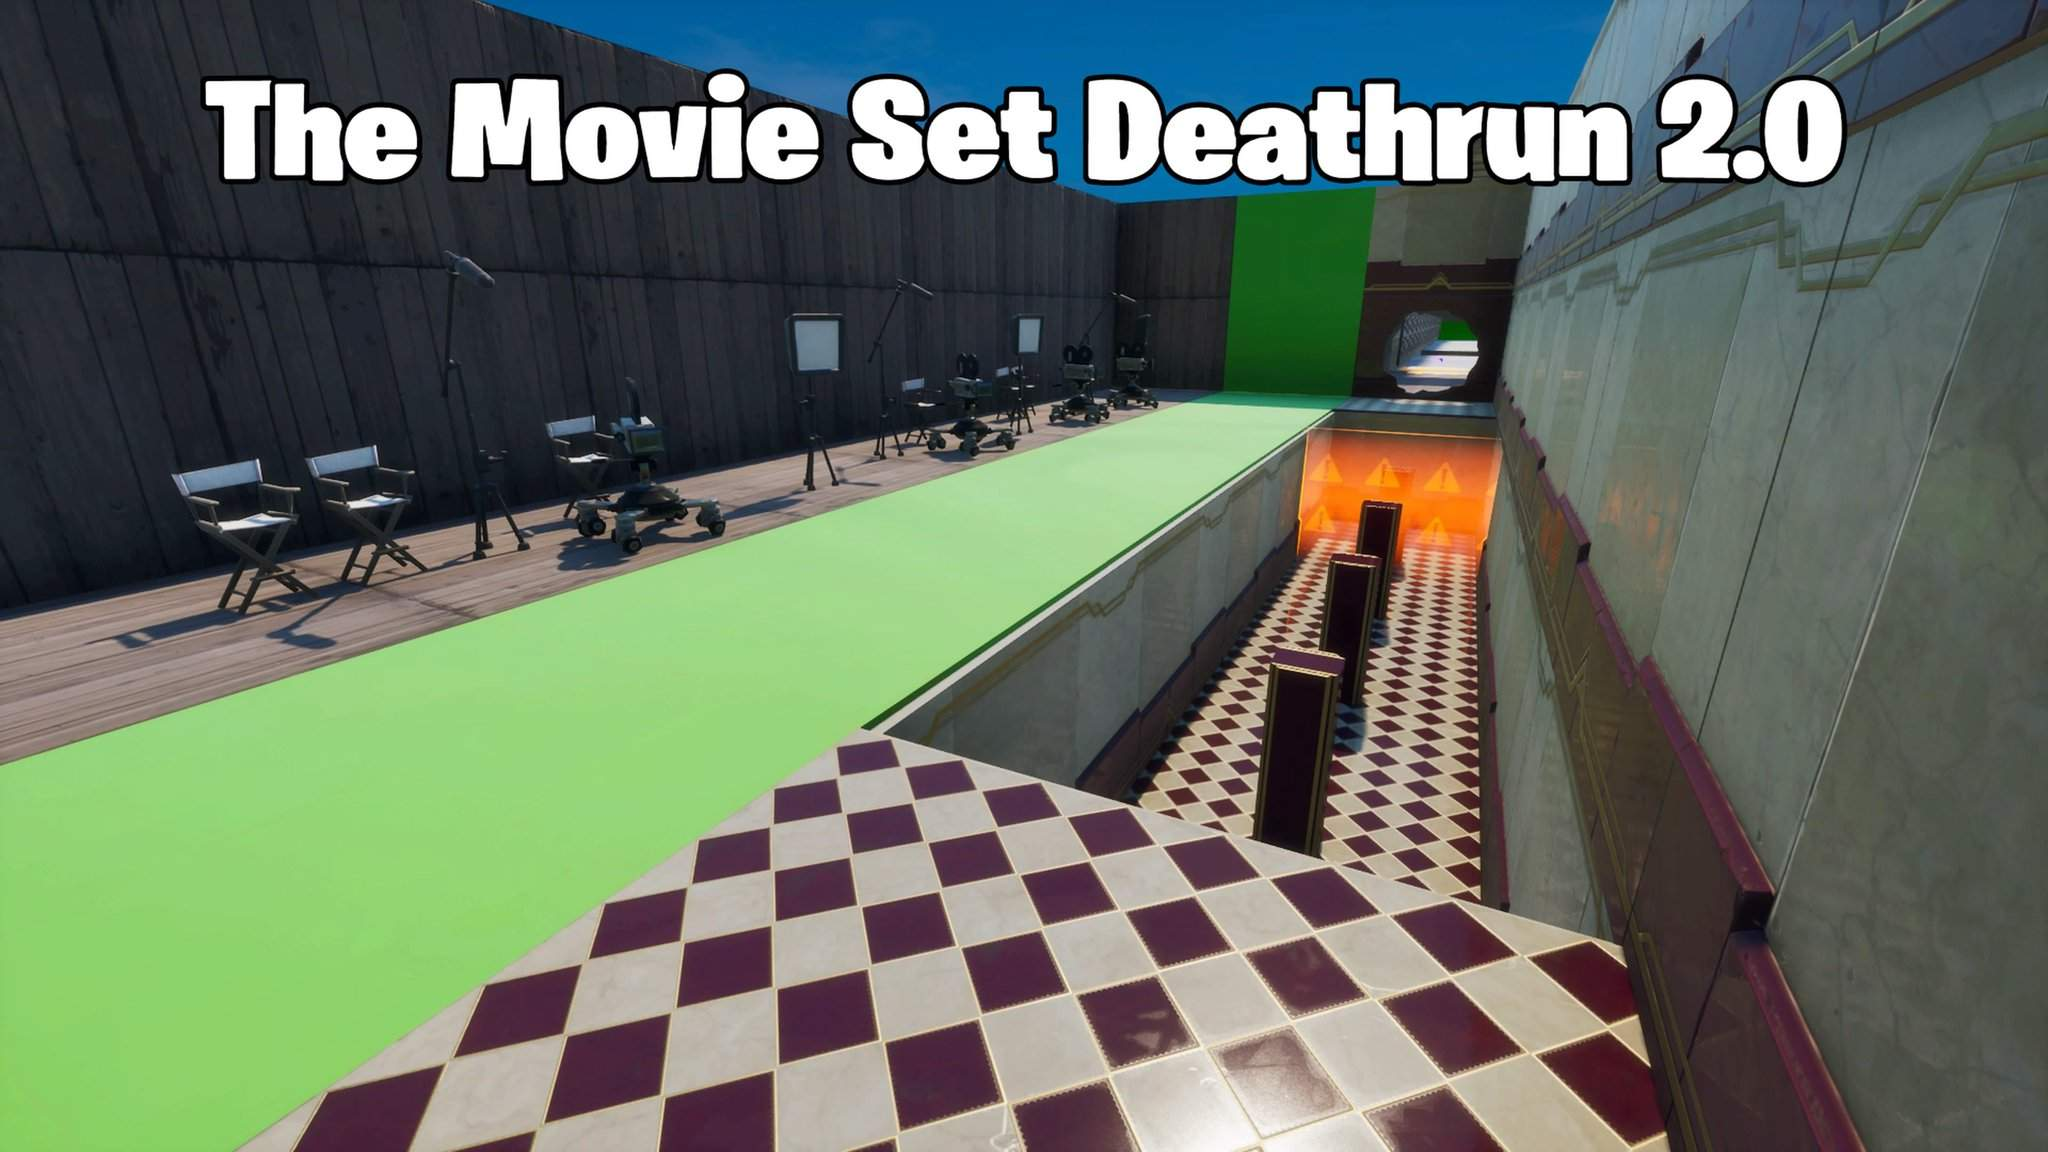 THE MOVIE SET DEATHRUN 2.0